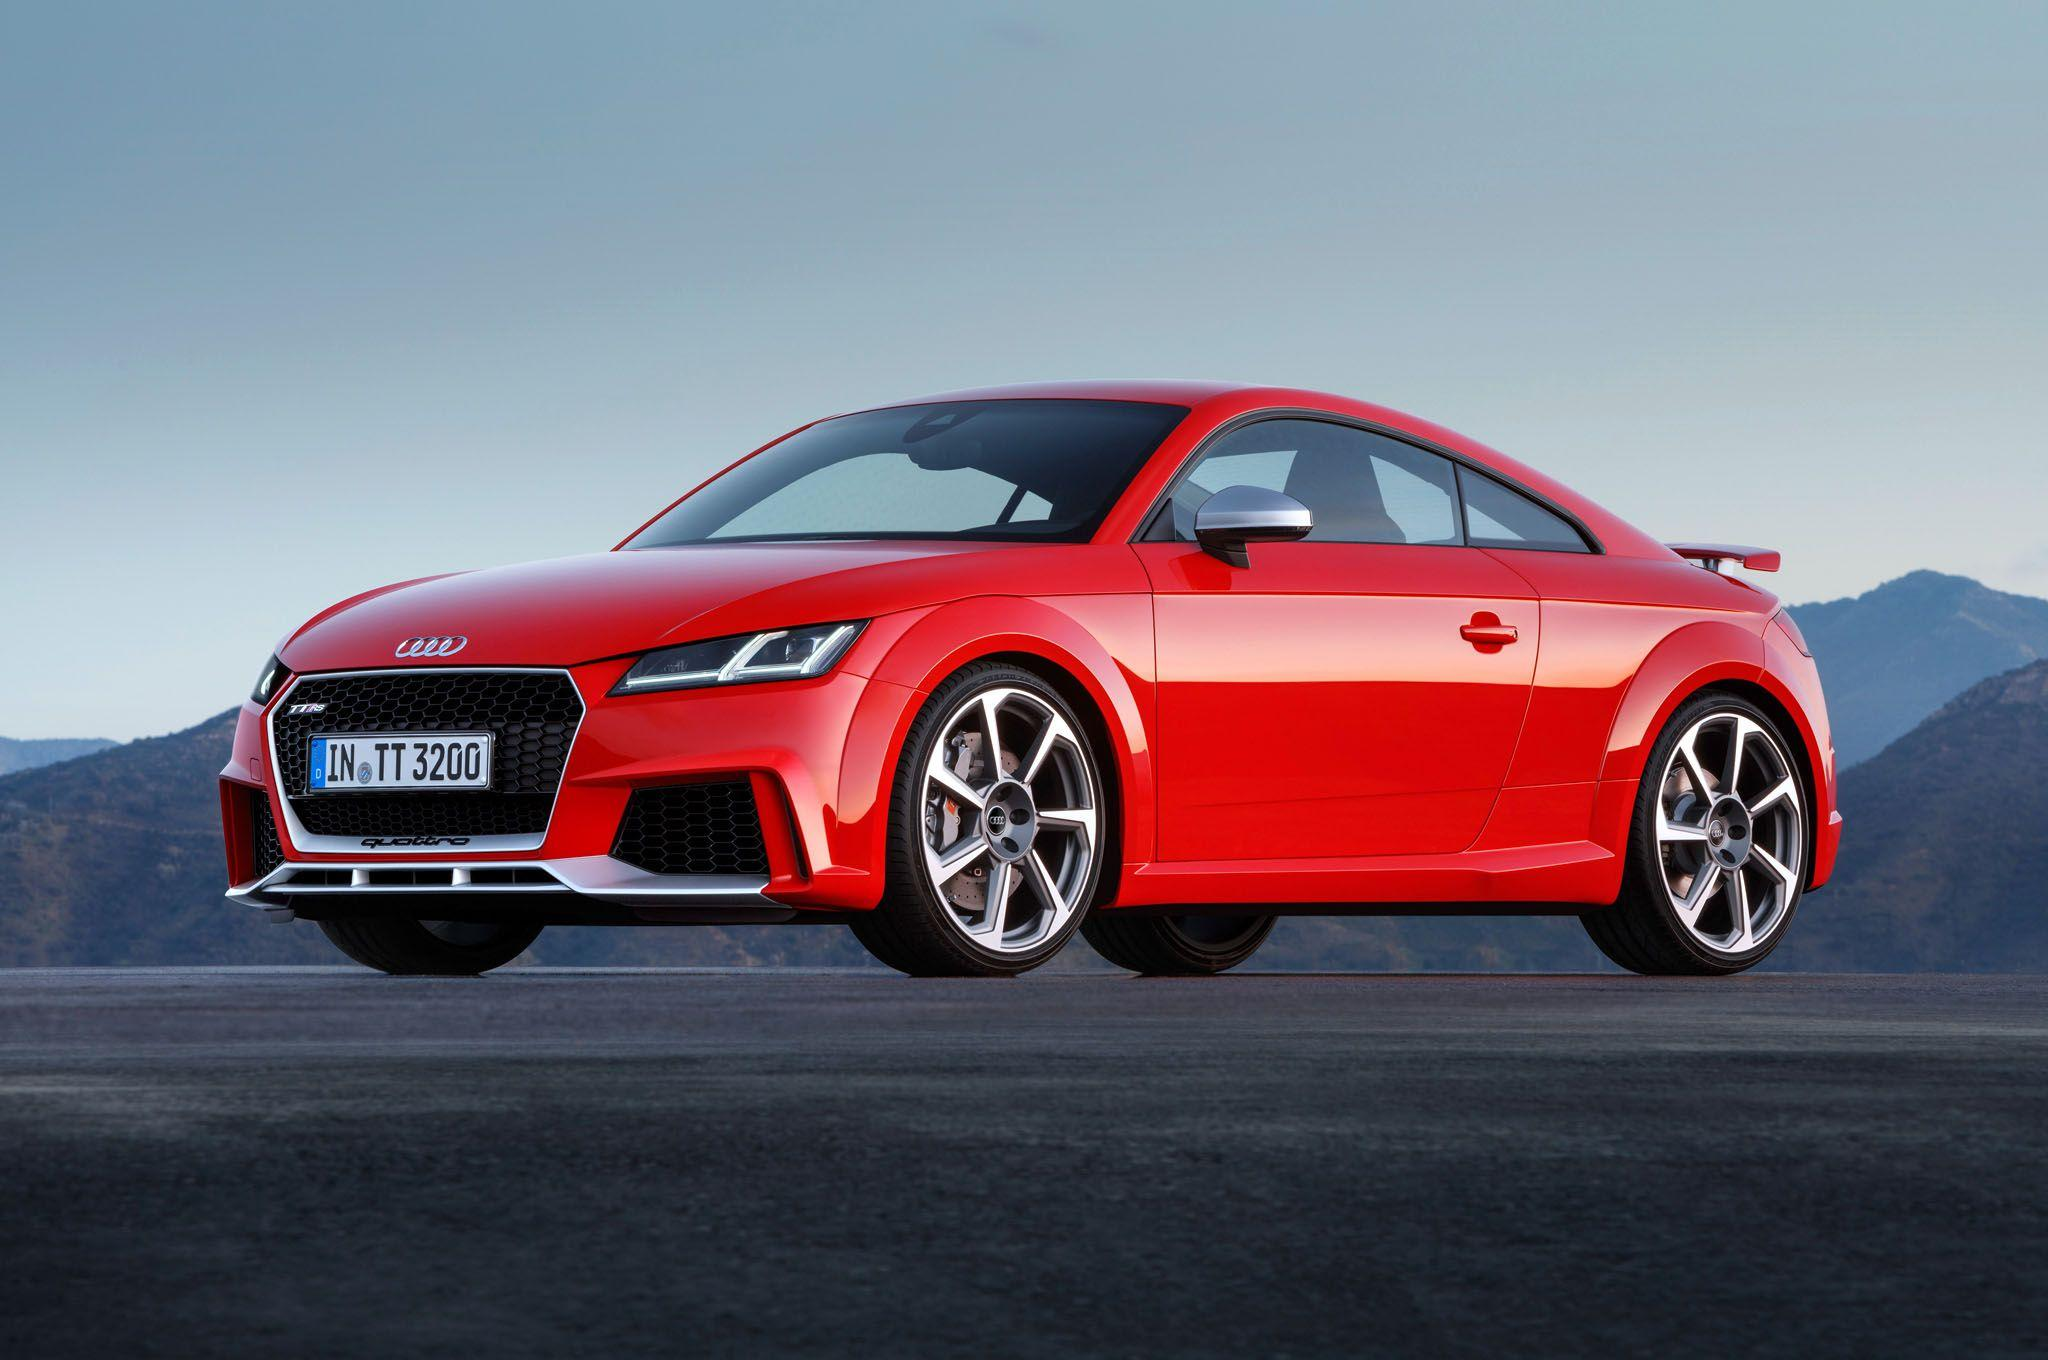 2017 Audi TT RS Coupe Backgrounds Wallpapers